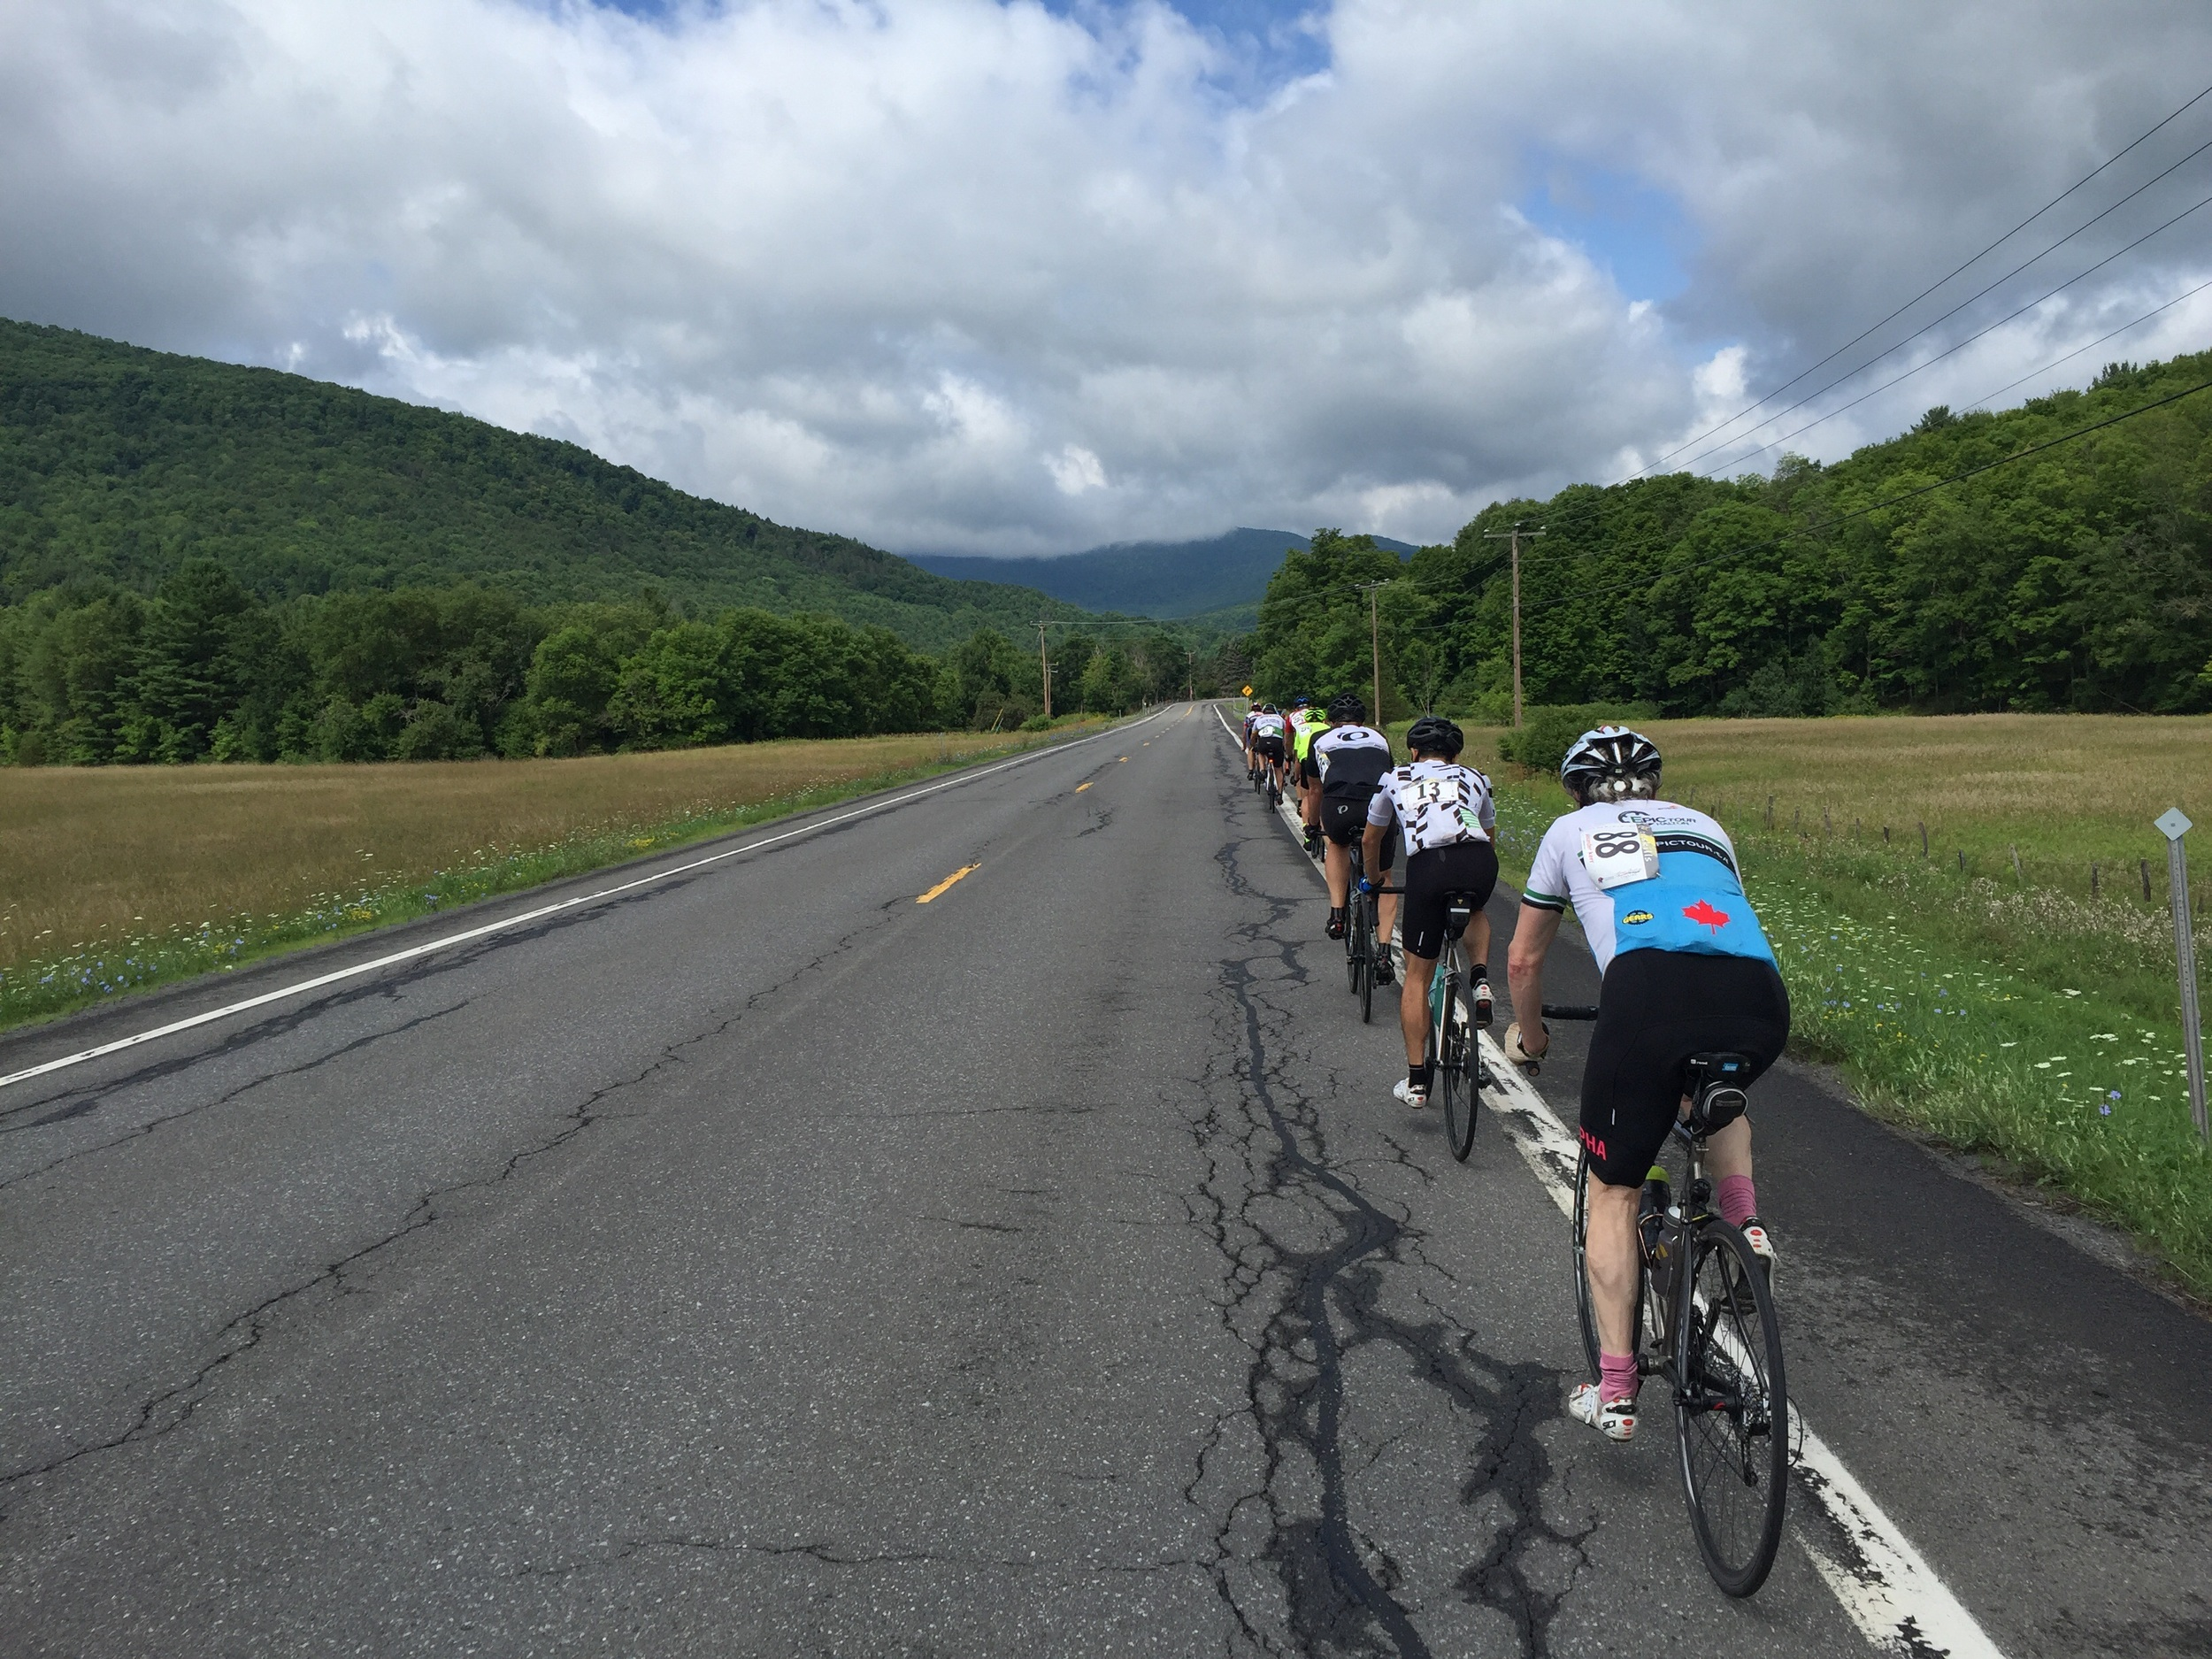 The pace line heading down Route 23A.